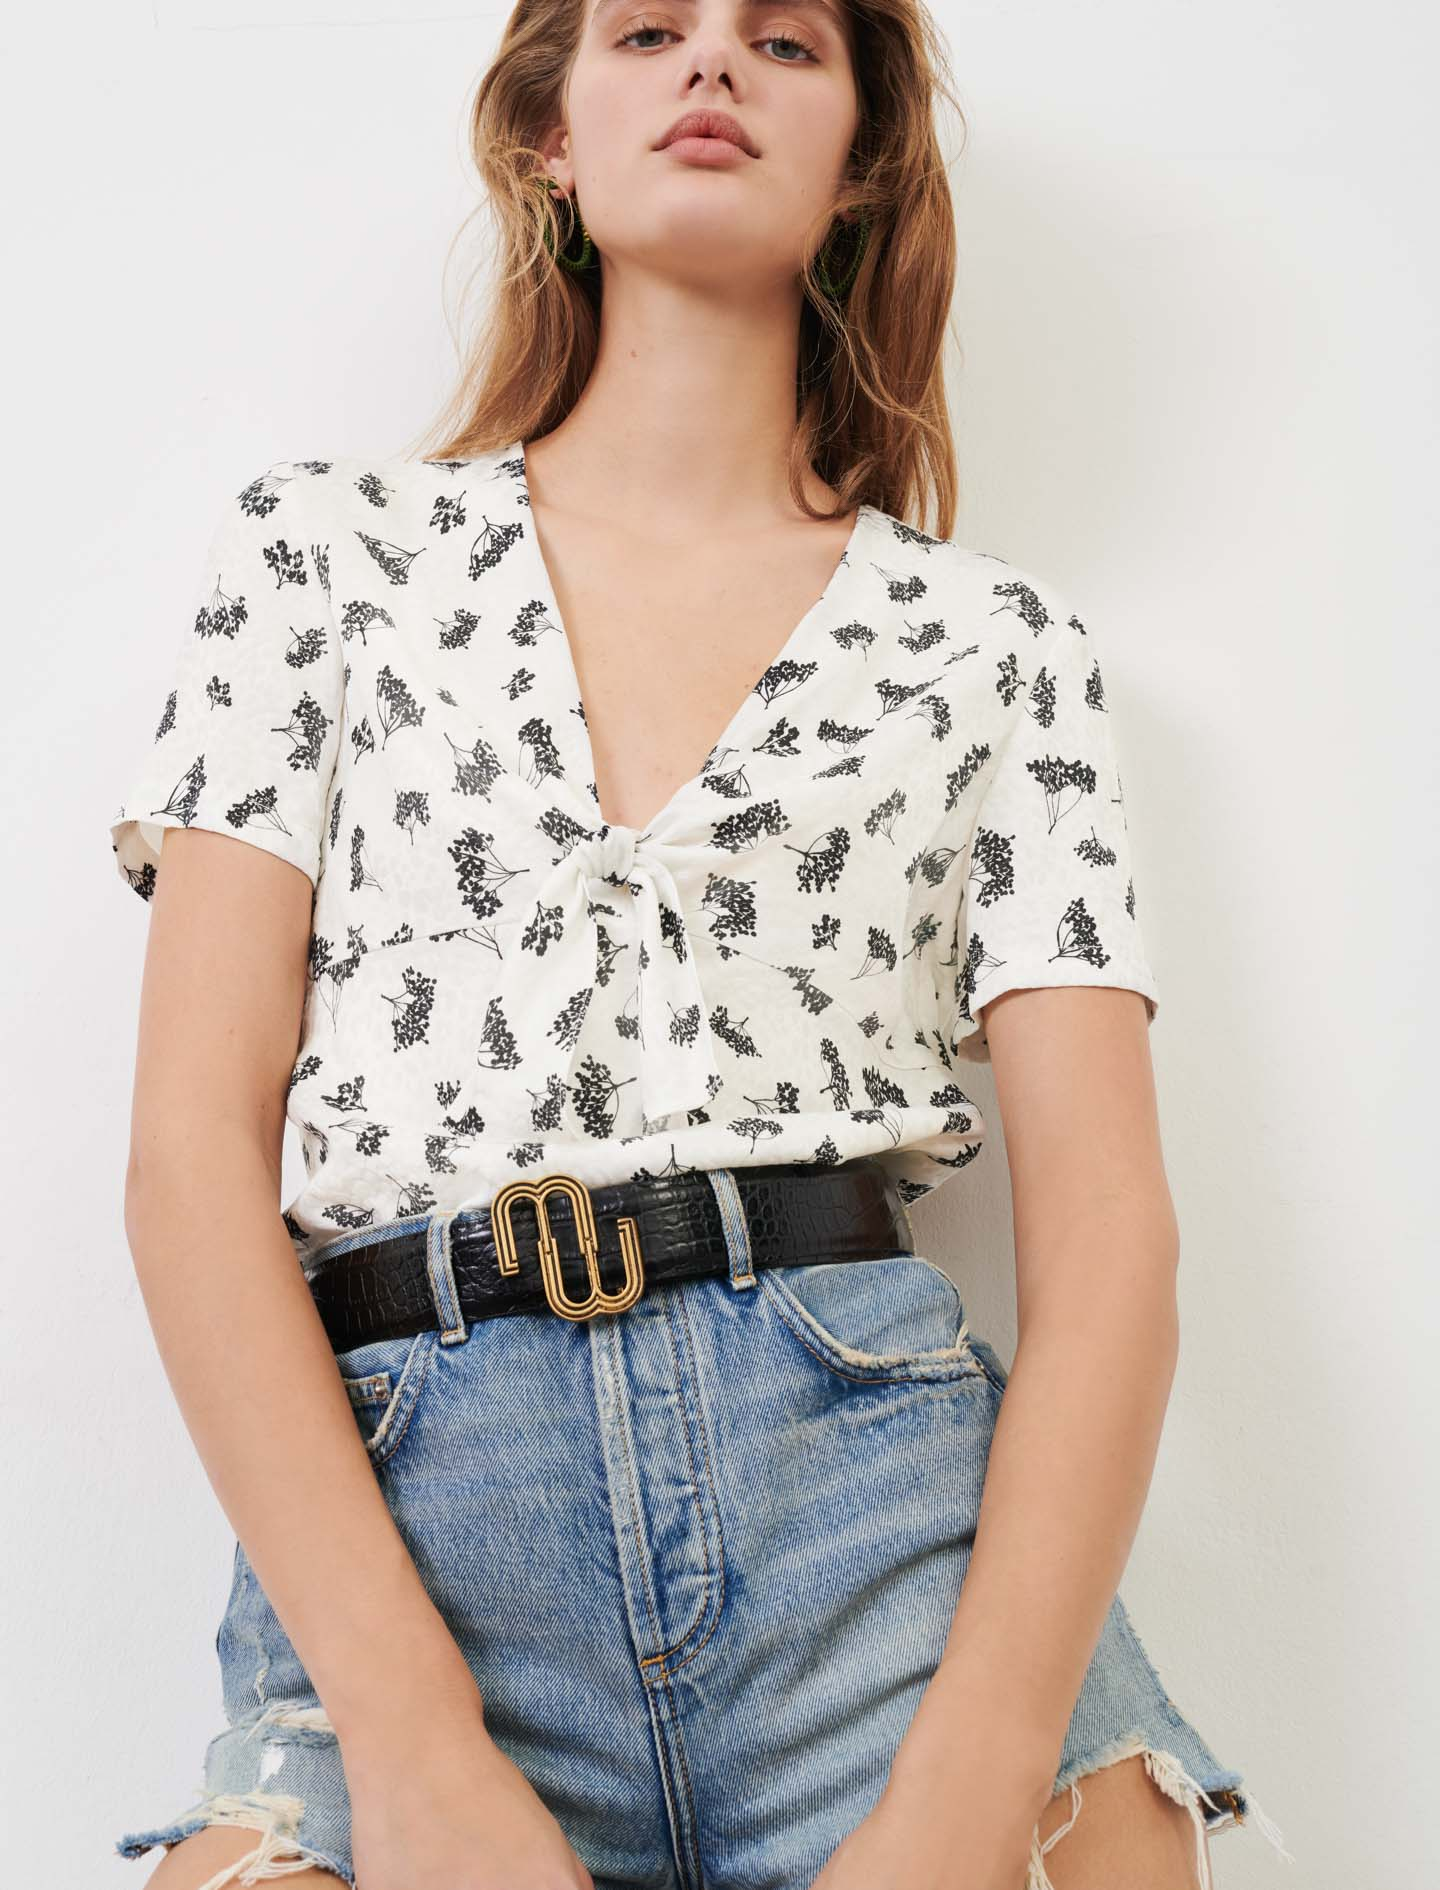 Printed top with bow tie collar - White